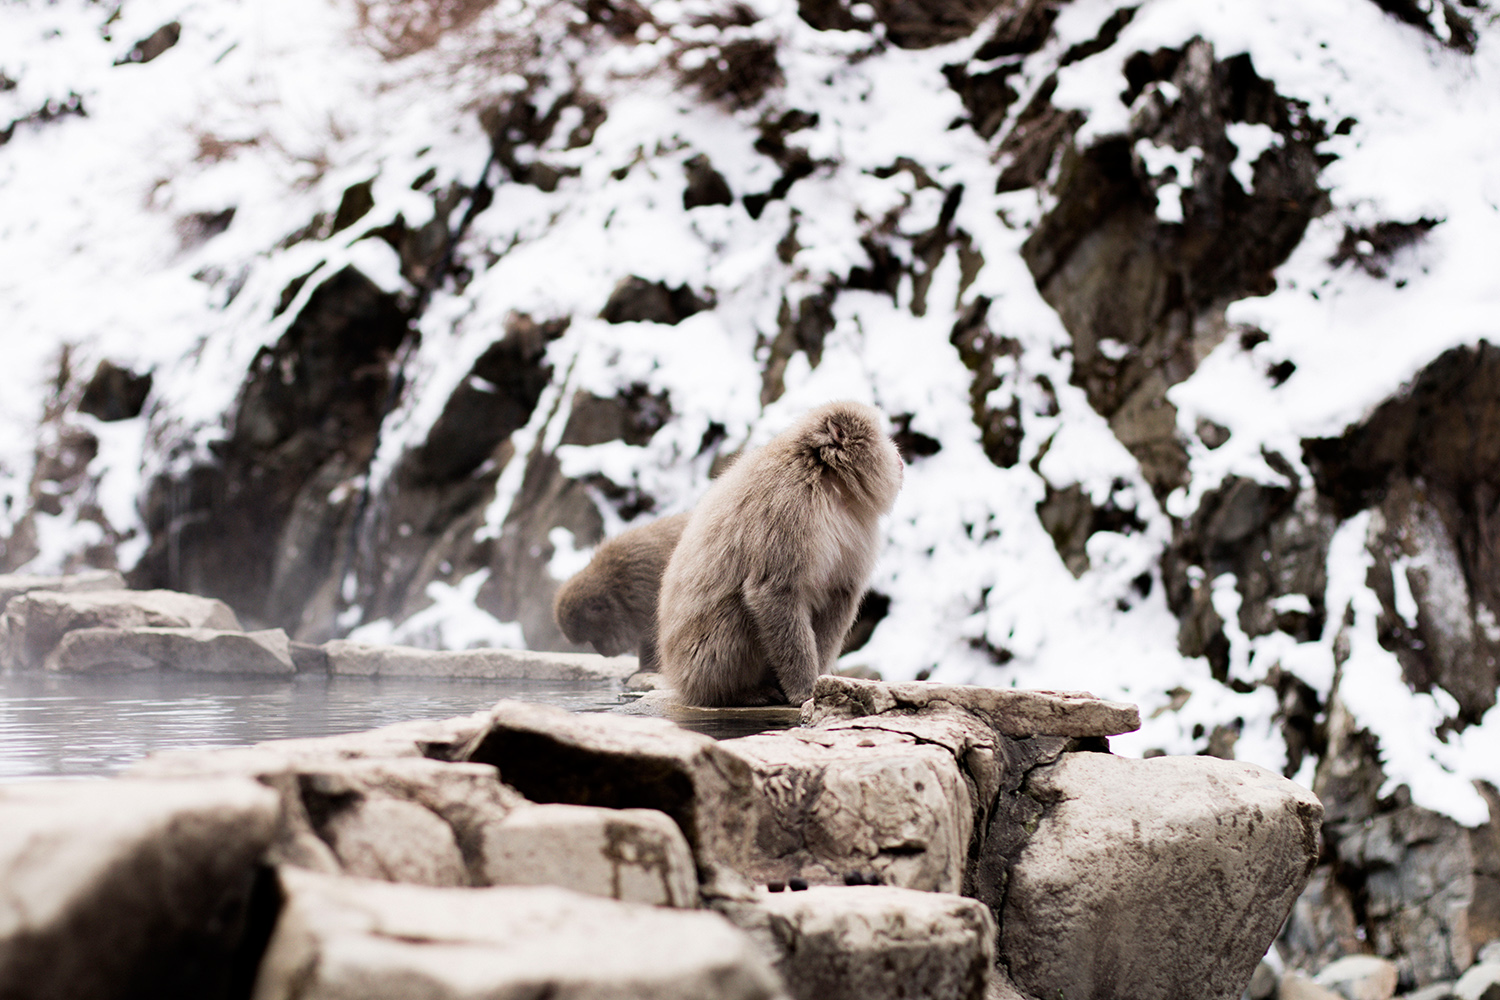 A Quick Travel Guide to Jigokudani Monkey Park 地獄谷野猿公苑 in Nagano, Japan